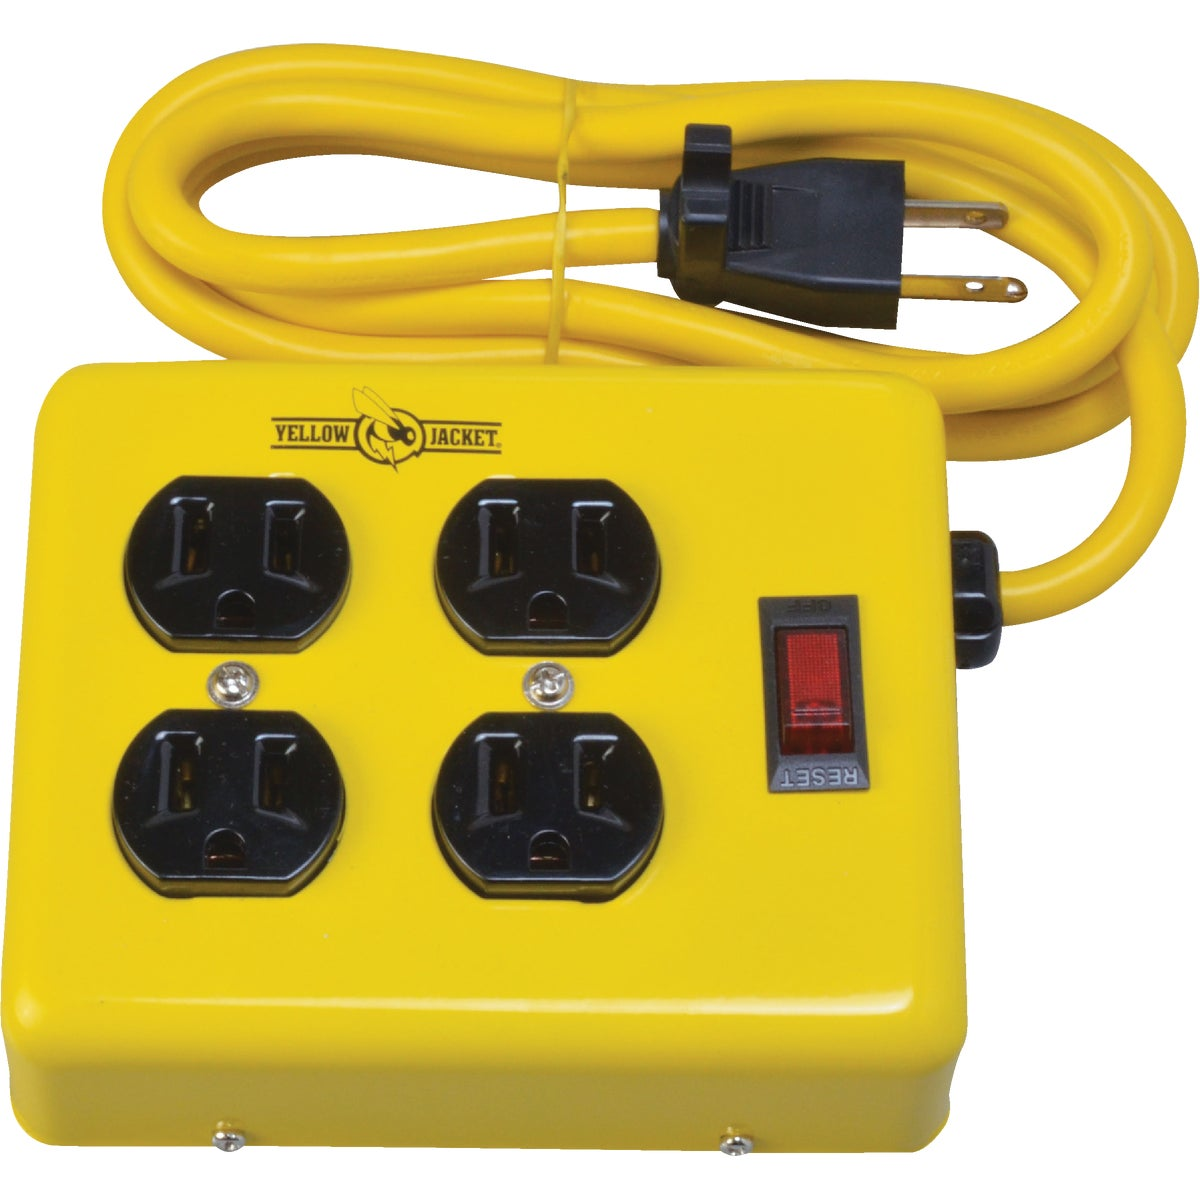 4-OUTLET MTL POWER STRIP